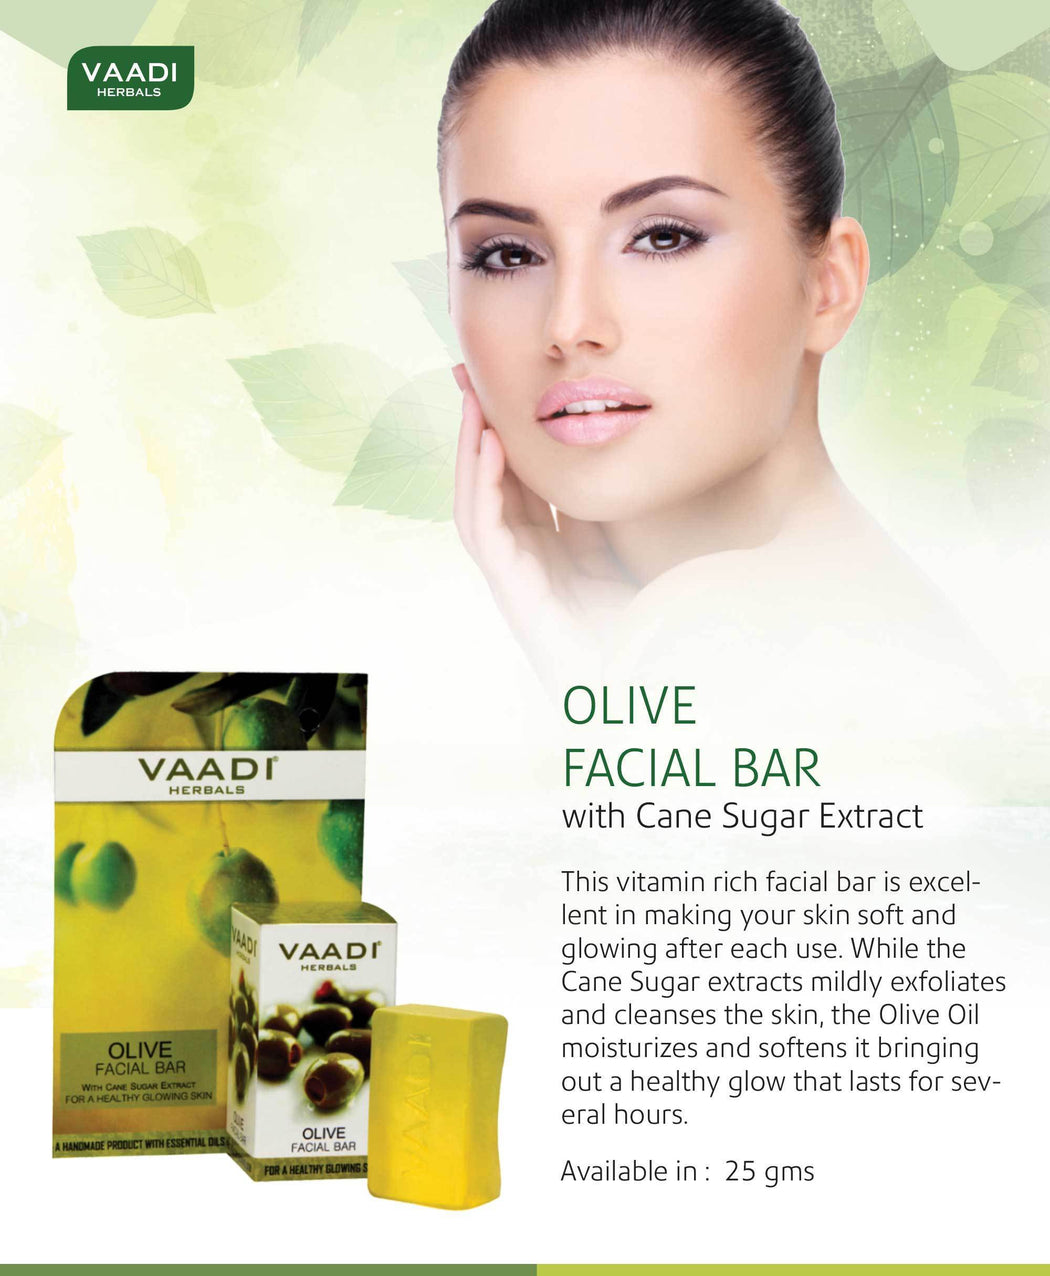 Organic Olive Facial Bar with Cane Sugar Extract - Exfoliates and Cleanses the Skin (6 x 25 gms/0.9 oz)